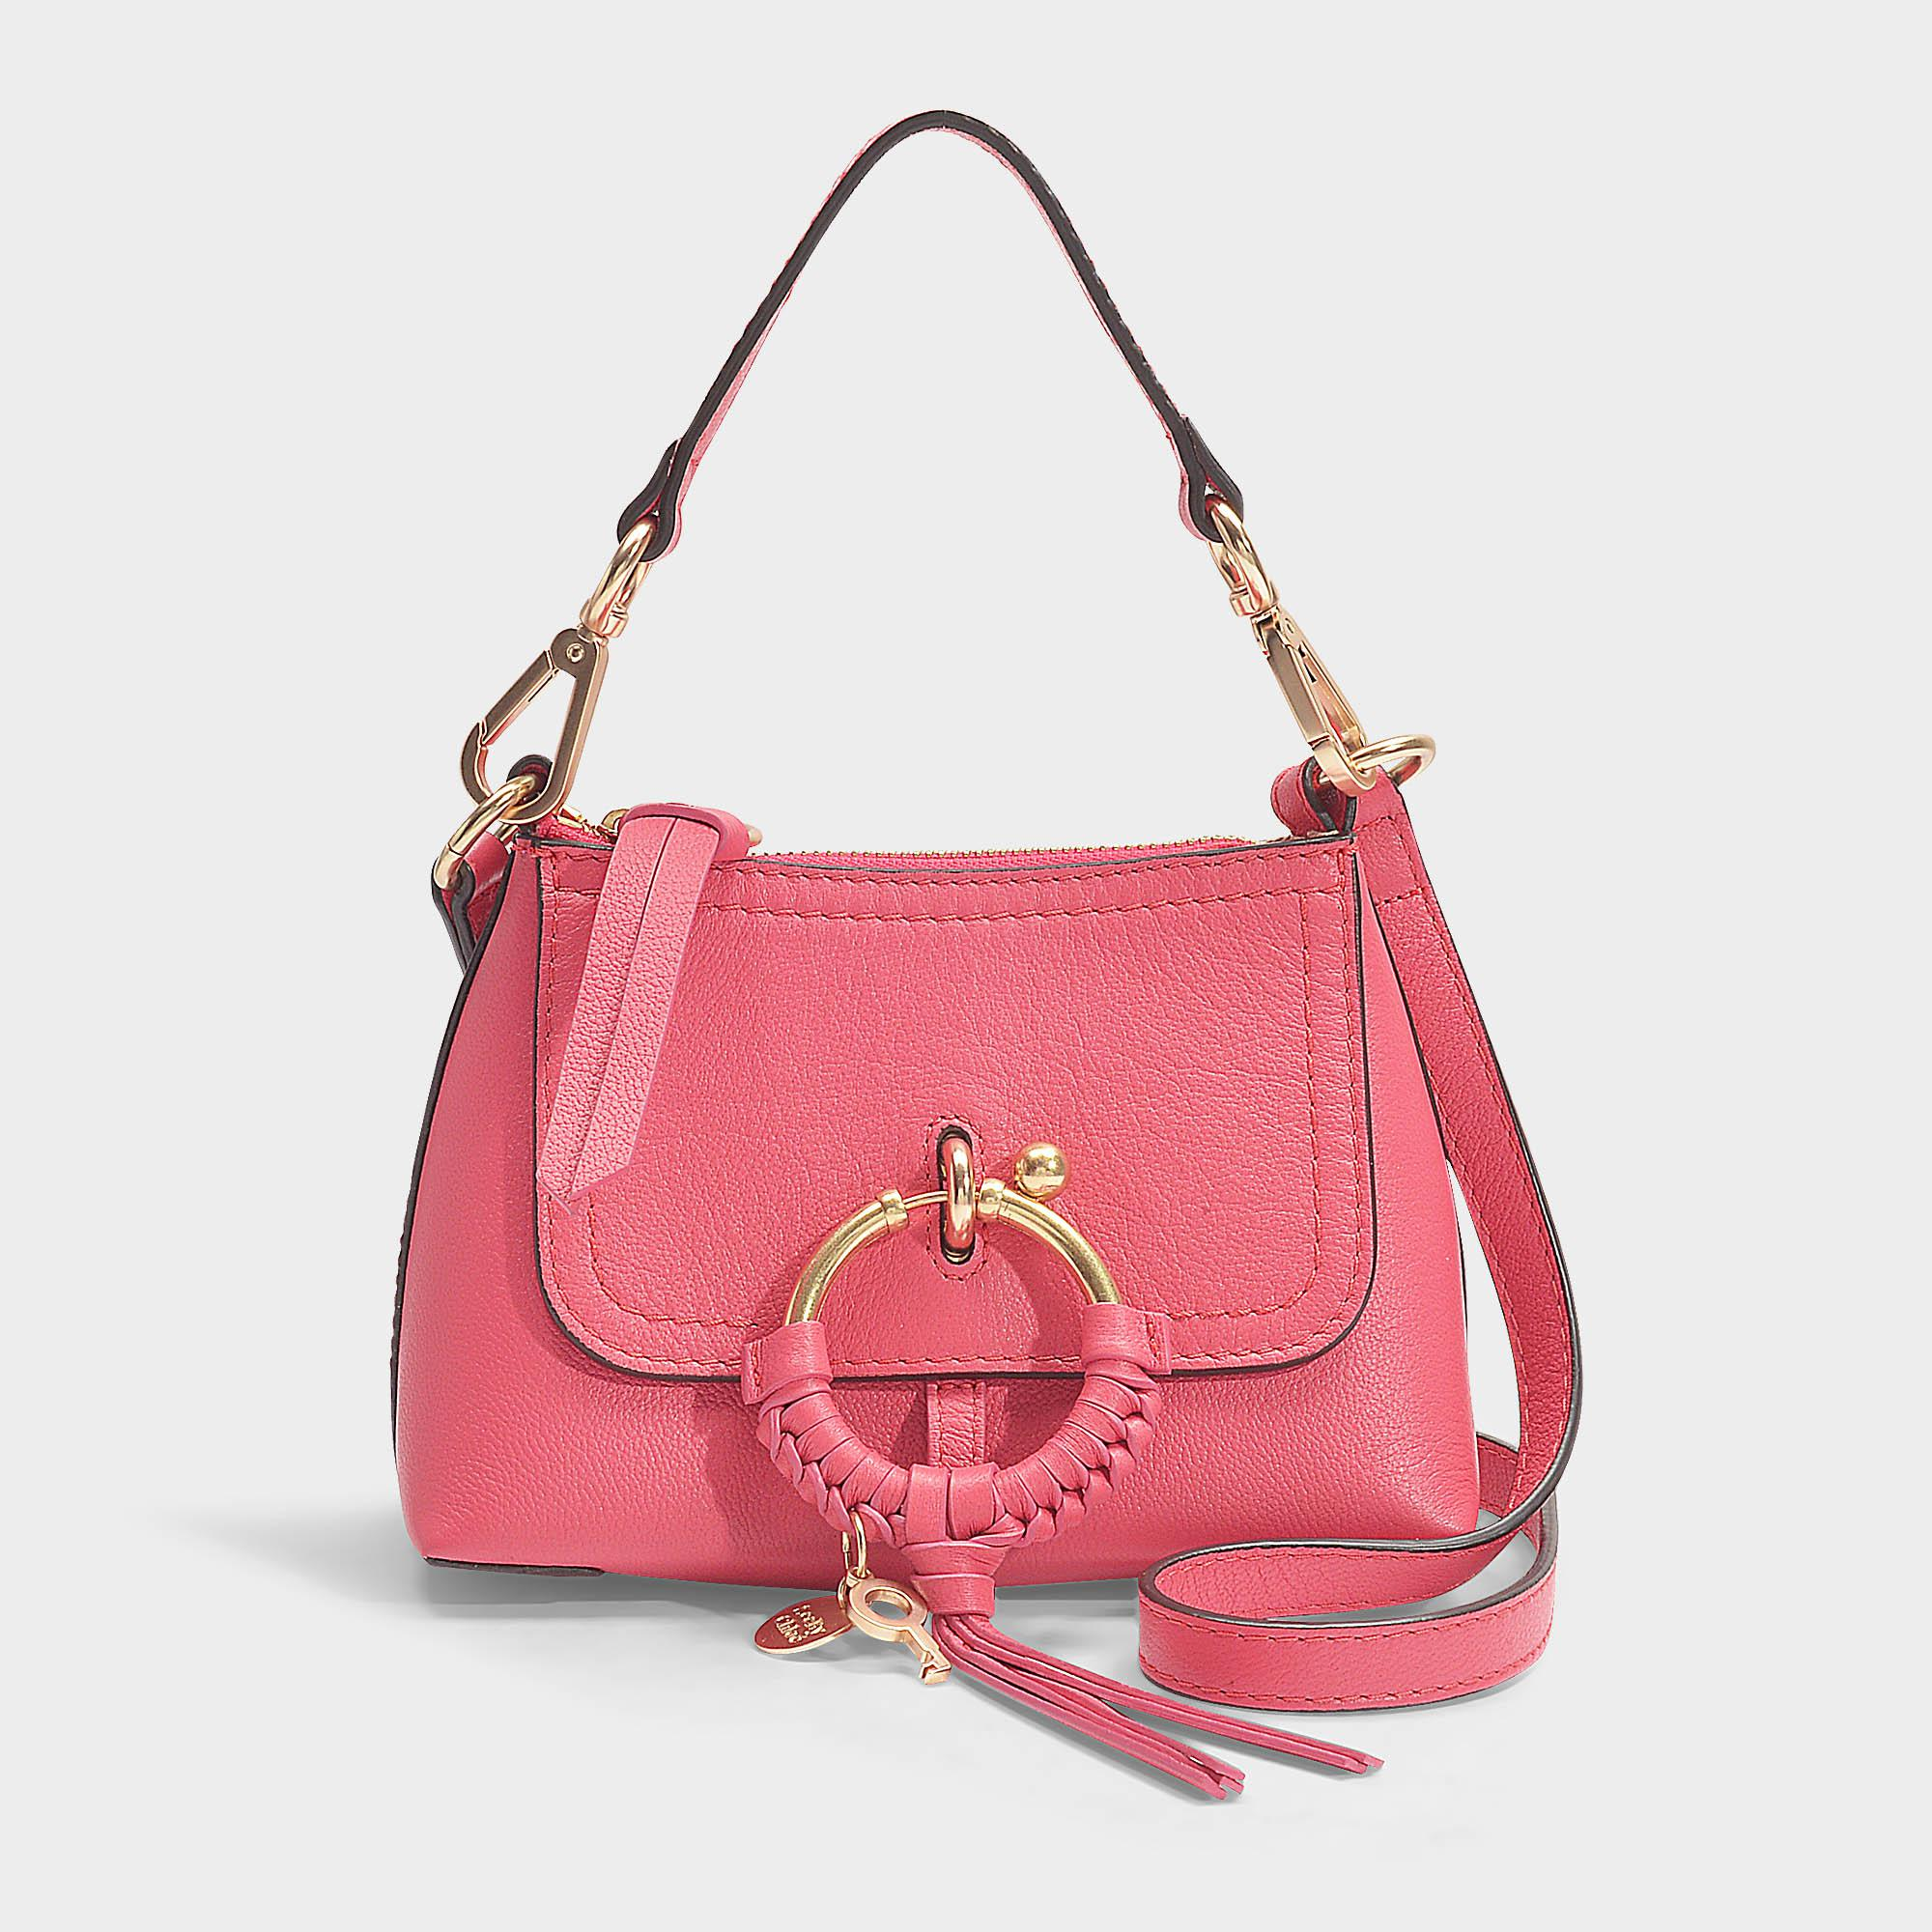 310e71e8b see-by-chloe-Pink-Joan-Mini-Hobo-Bag-In-Ardent-Pink-Grained-Leather.jpeg